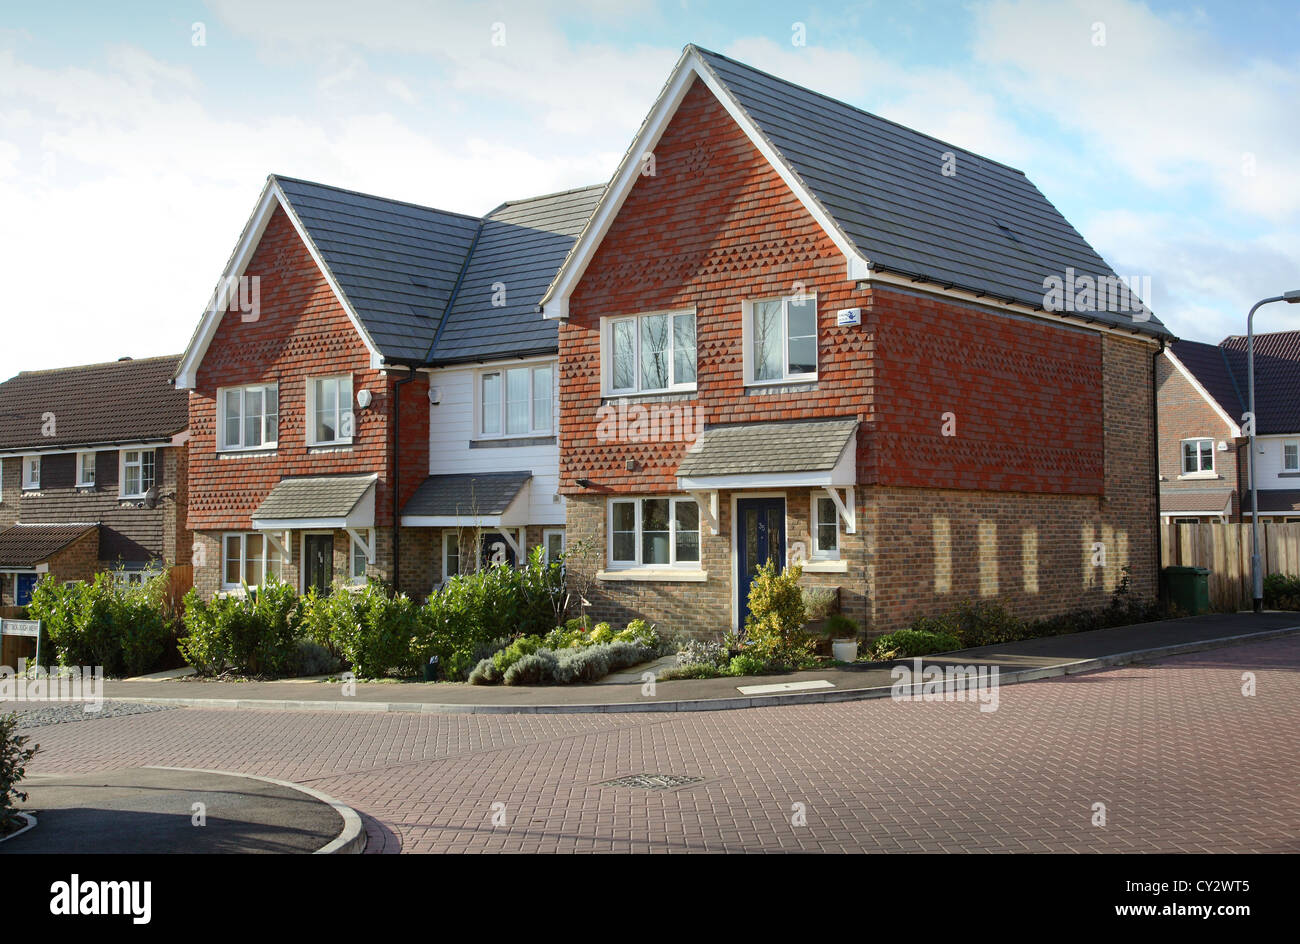 Modern 2 storey family housing in a traditional british style in the hampshire village of hambledon